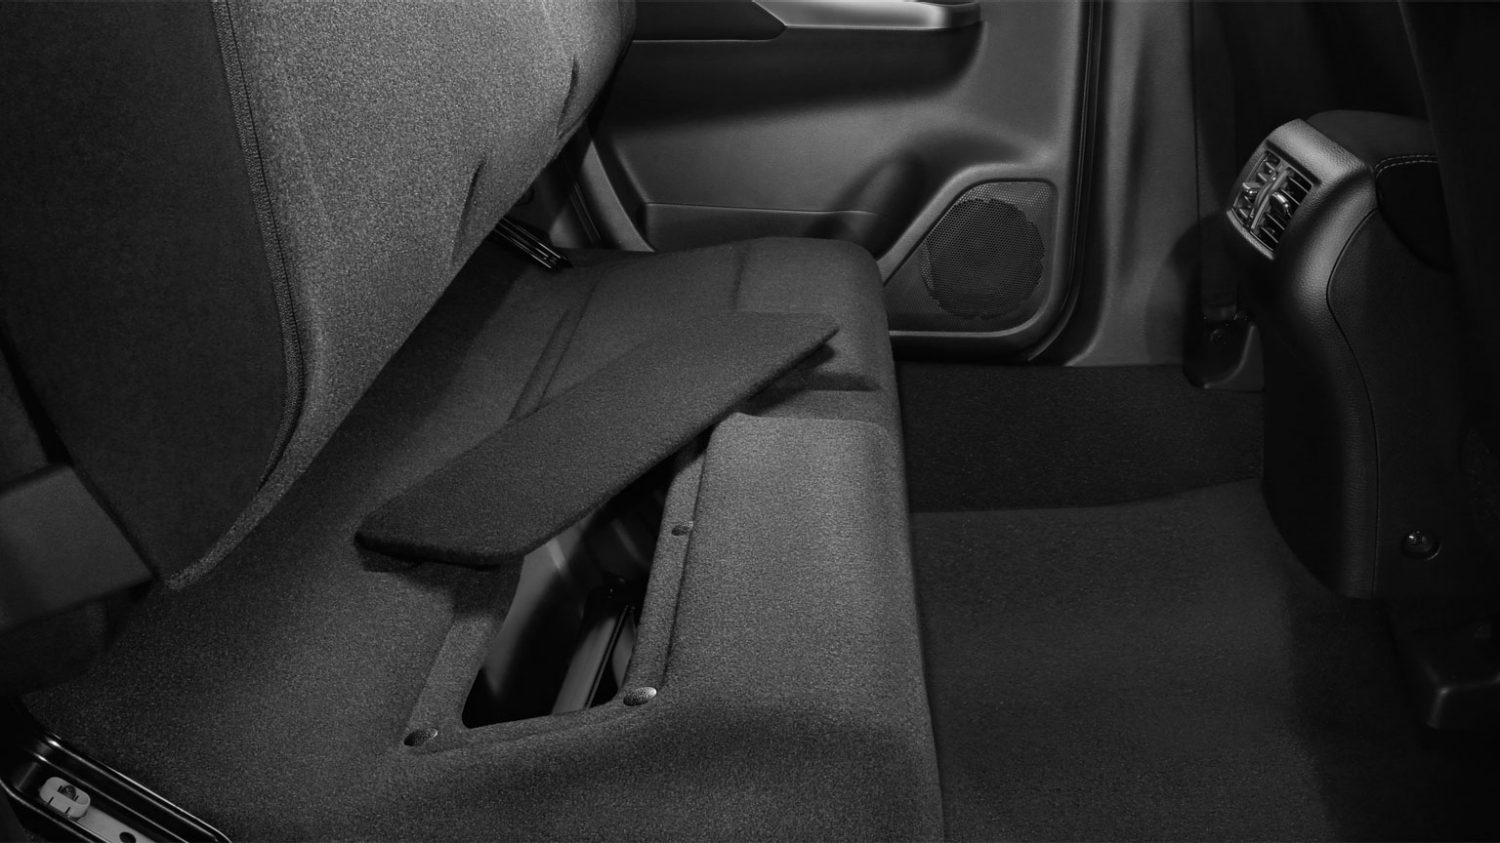 Nissan Navara - Rear storage compartment